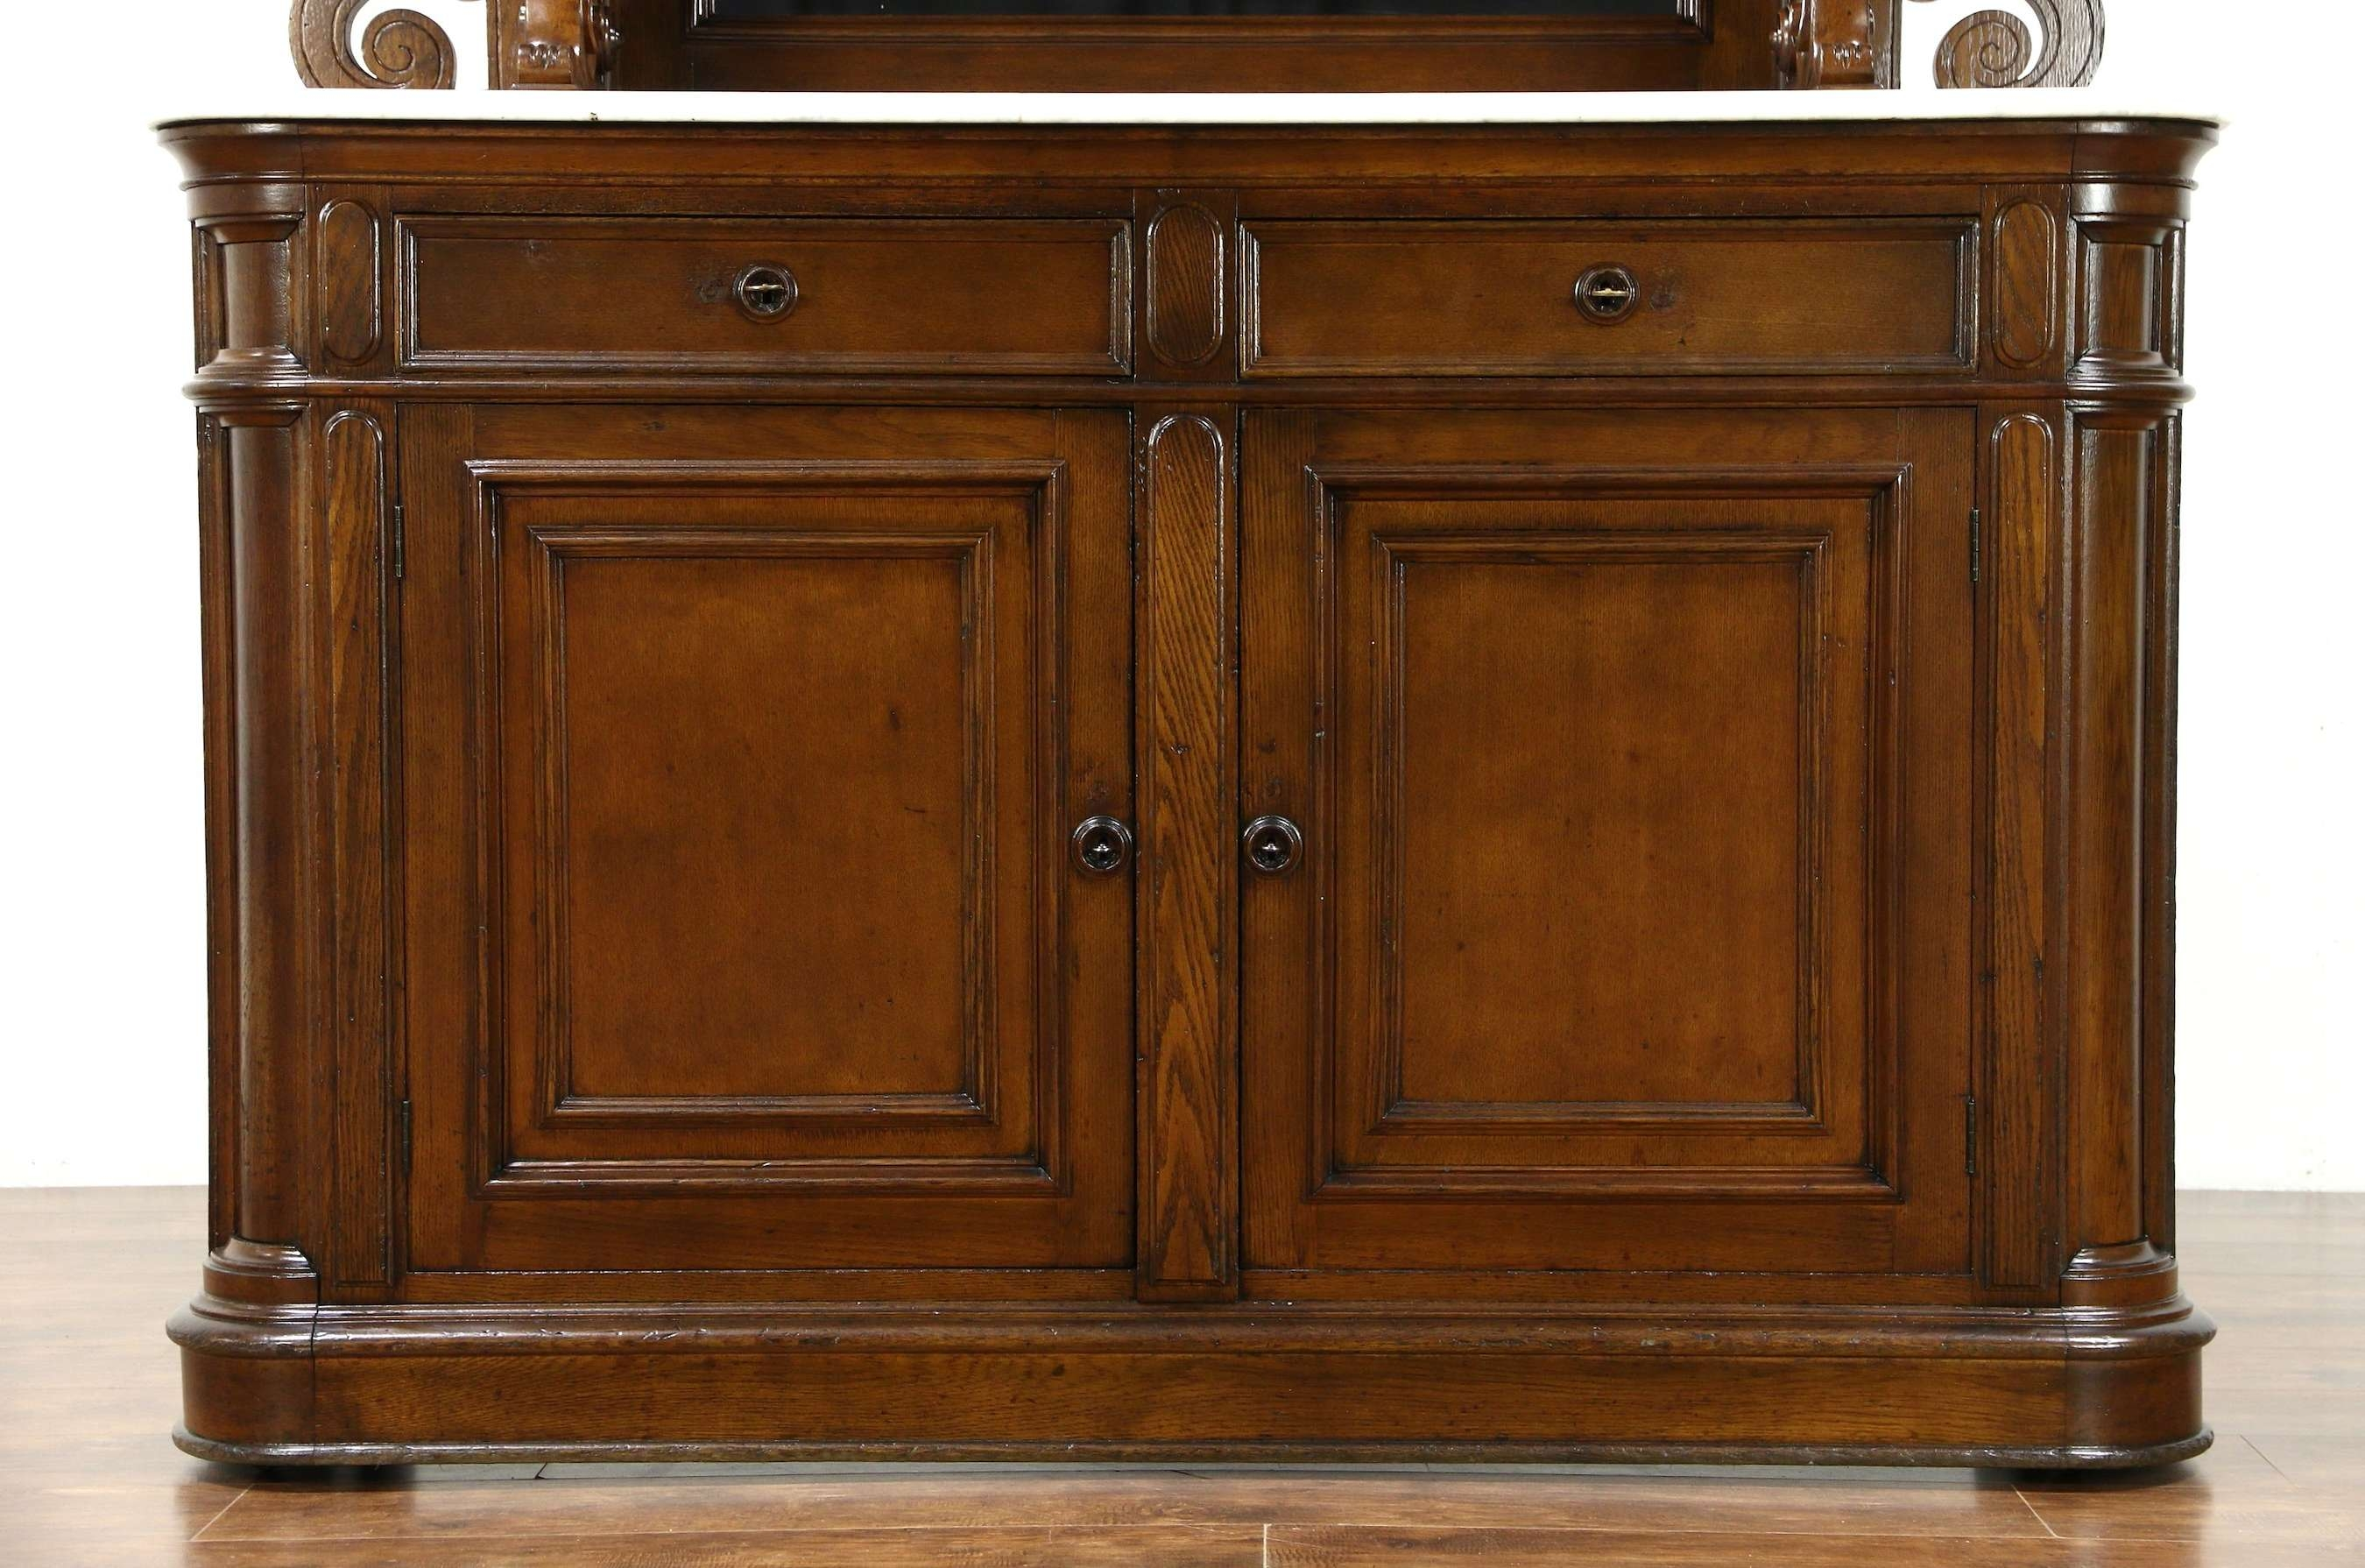 Victorian Grape Carved Oak Antique 1870 Sideboard, Server Or With Sideboards With Marble Tops (View 20 of 20)